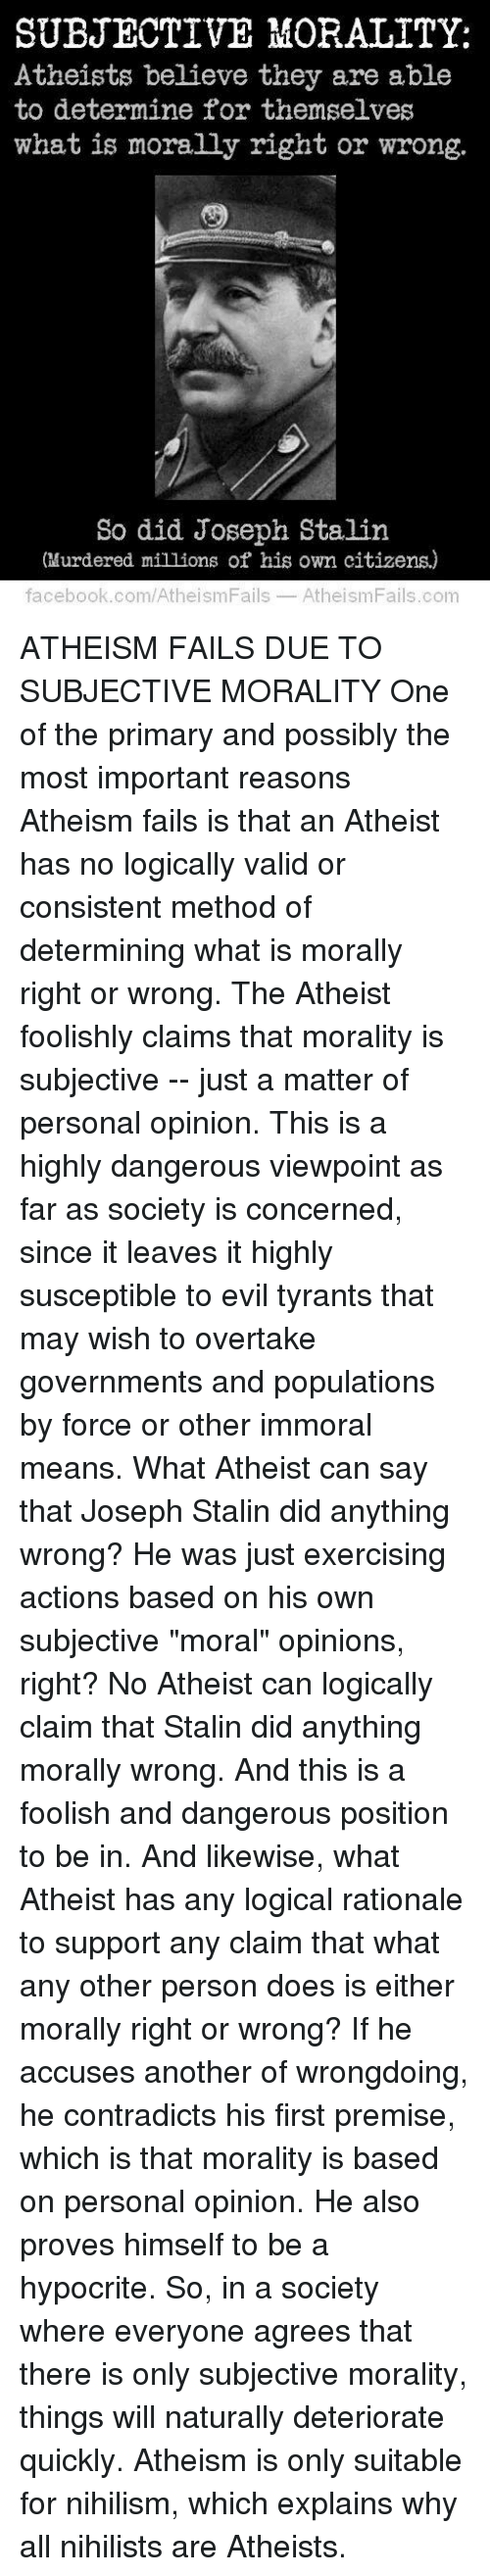 why was stalin able to defeat Why stalin was able to win the power struggle with trotsky the bolsheviks, the ruling party of the soviet union, was lead by the lenin when lenin died in january of 1924, he left behind no clear successor, and vague indications of his.